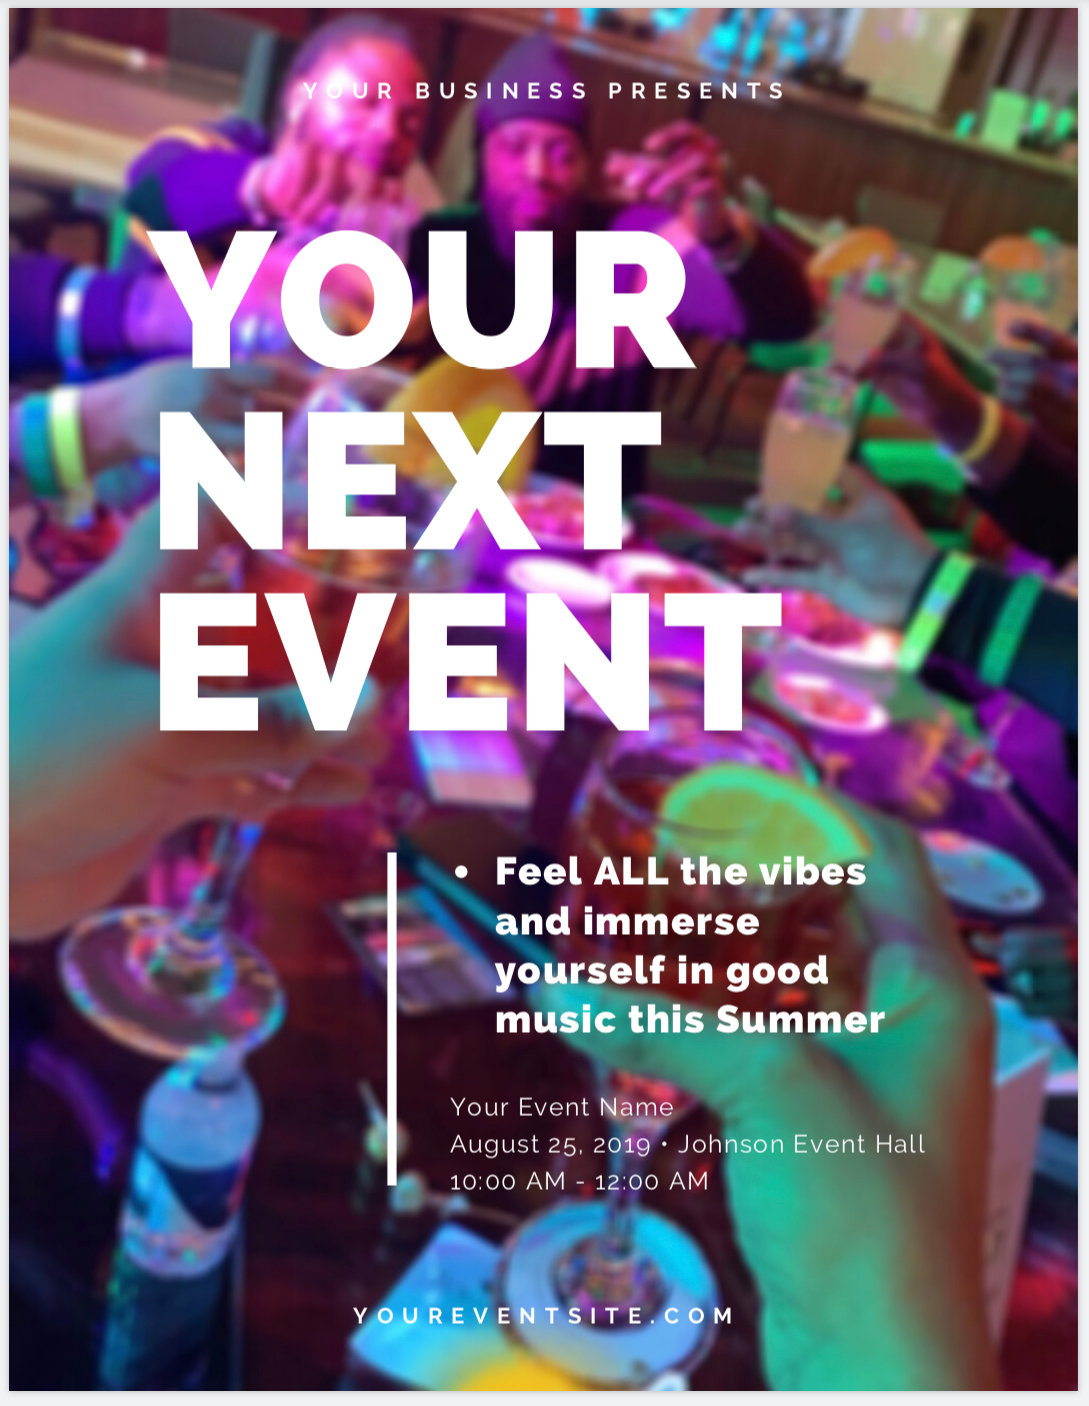 YOUR NEXT EVENT